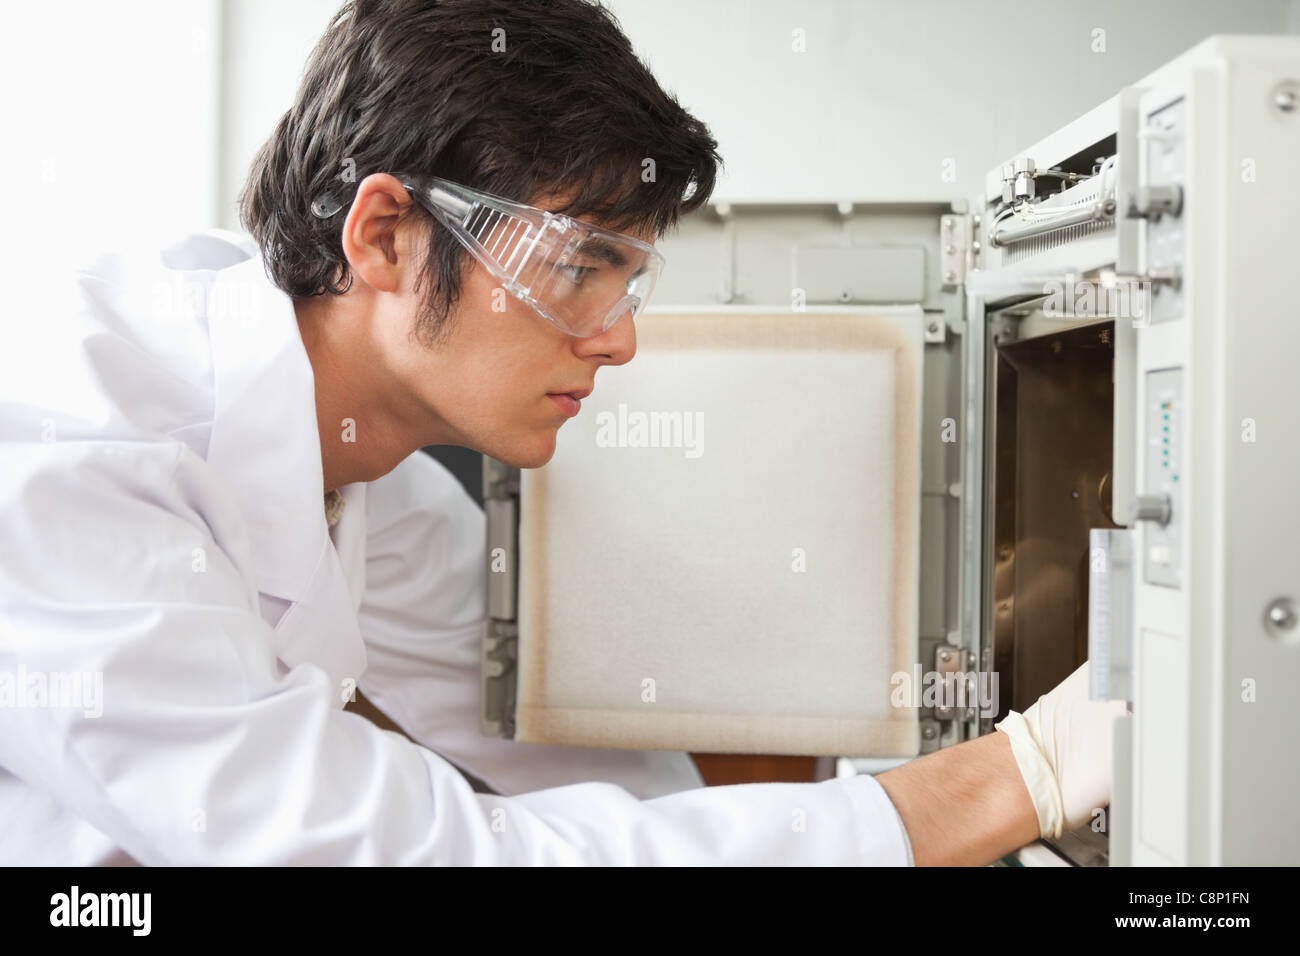 Close up of a scientist using a laboratory chamber furnace - Stock Image